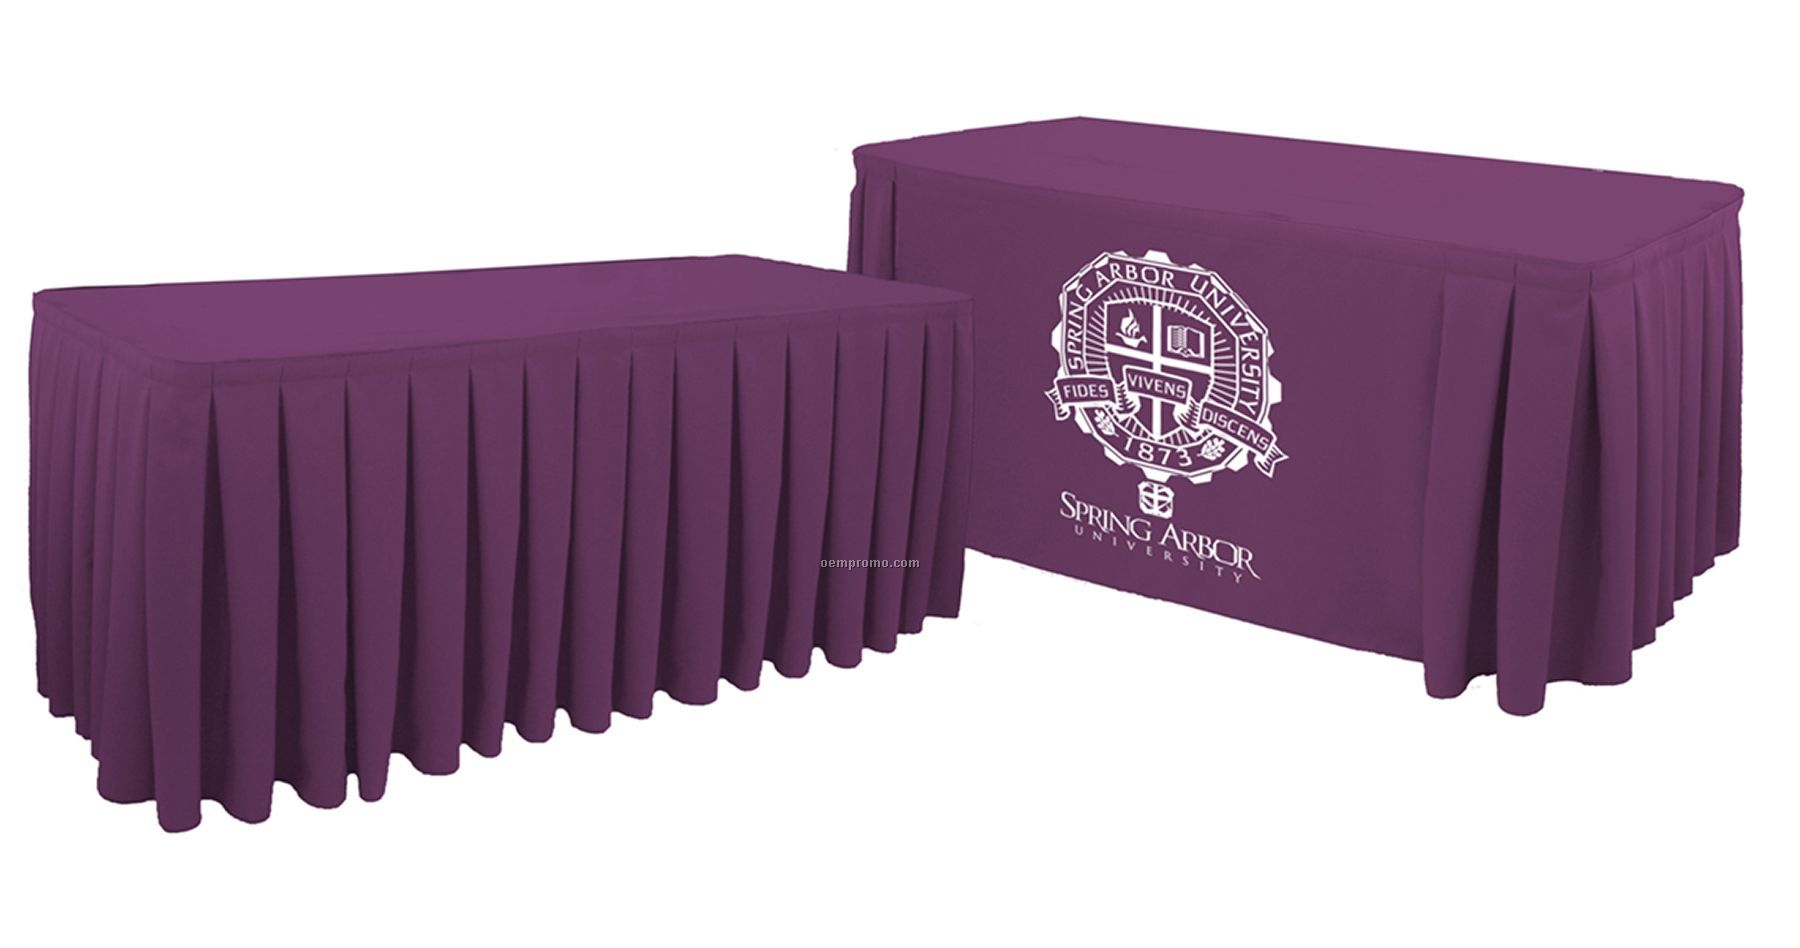 Digitally Printed 17' Box Pleat Table Skirt - Fits 6ft Table